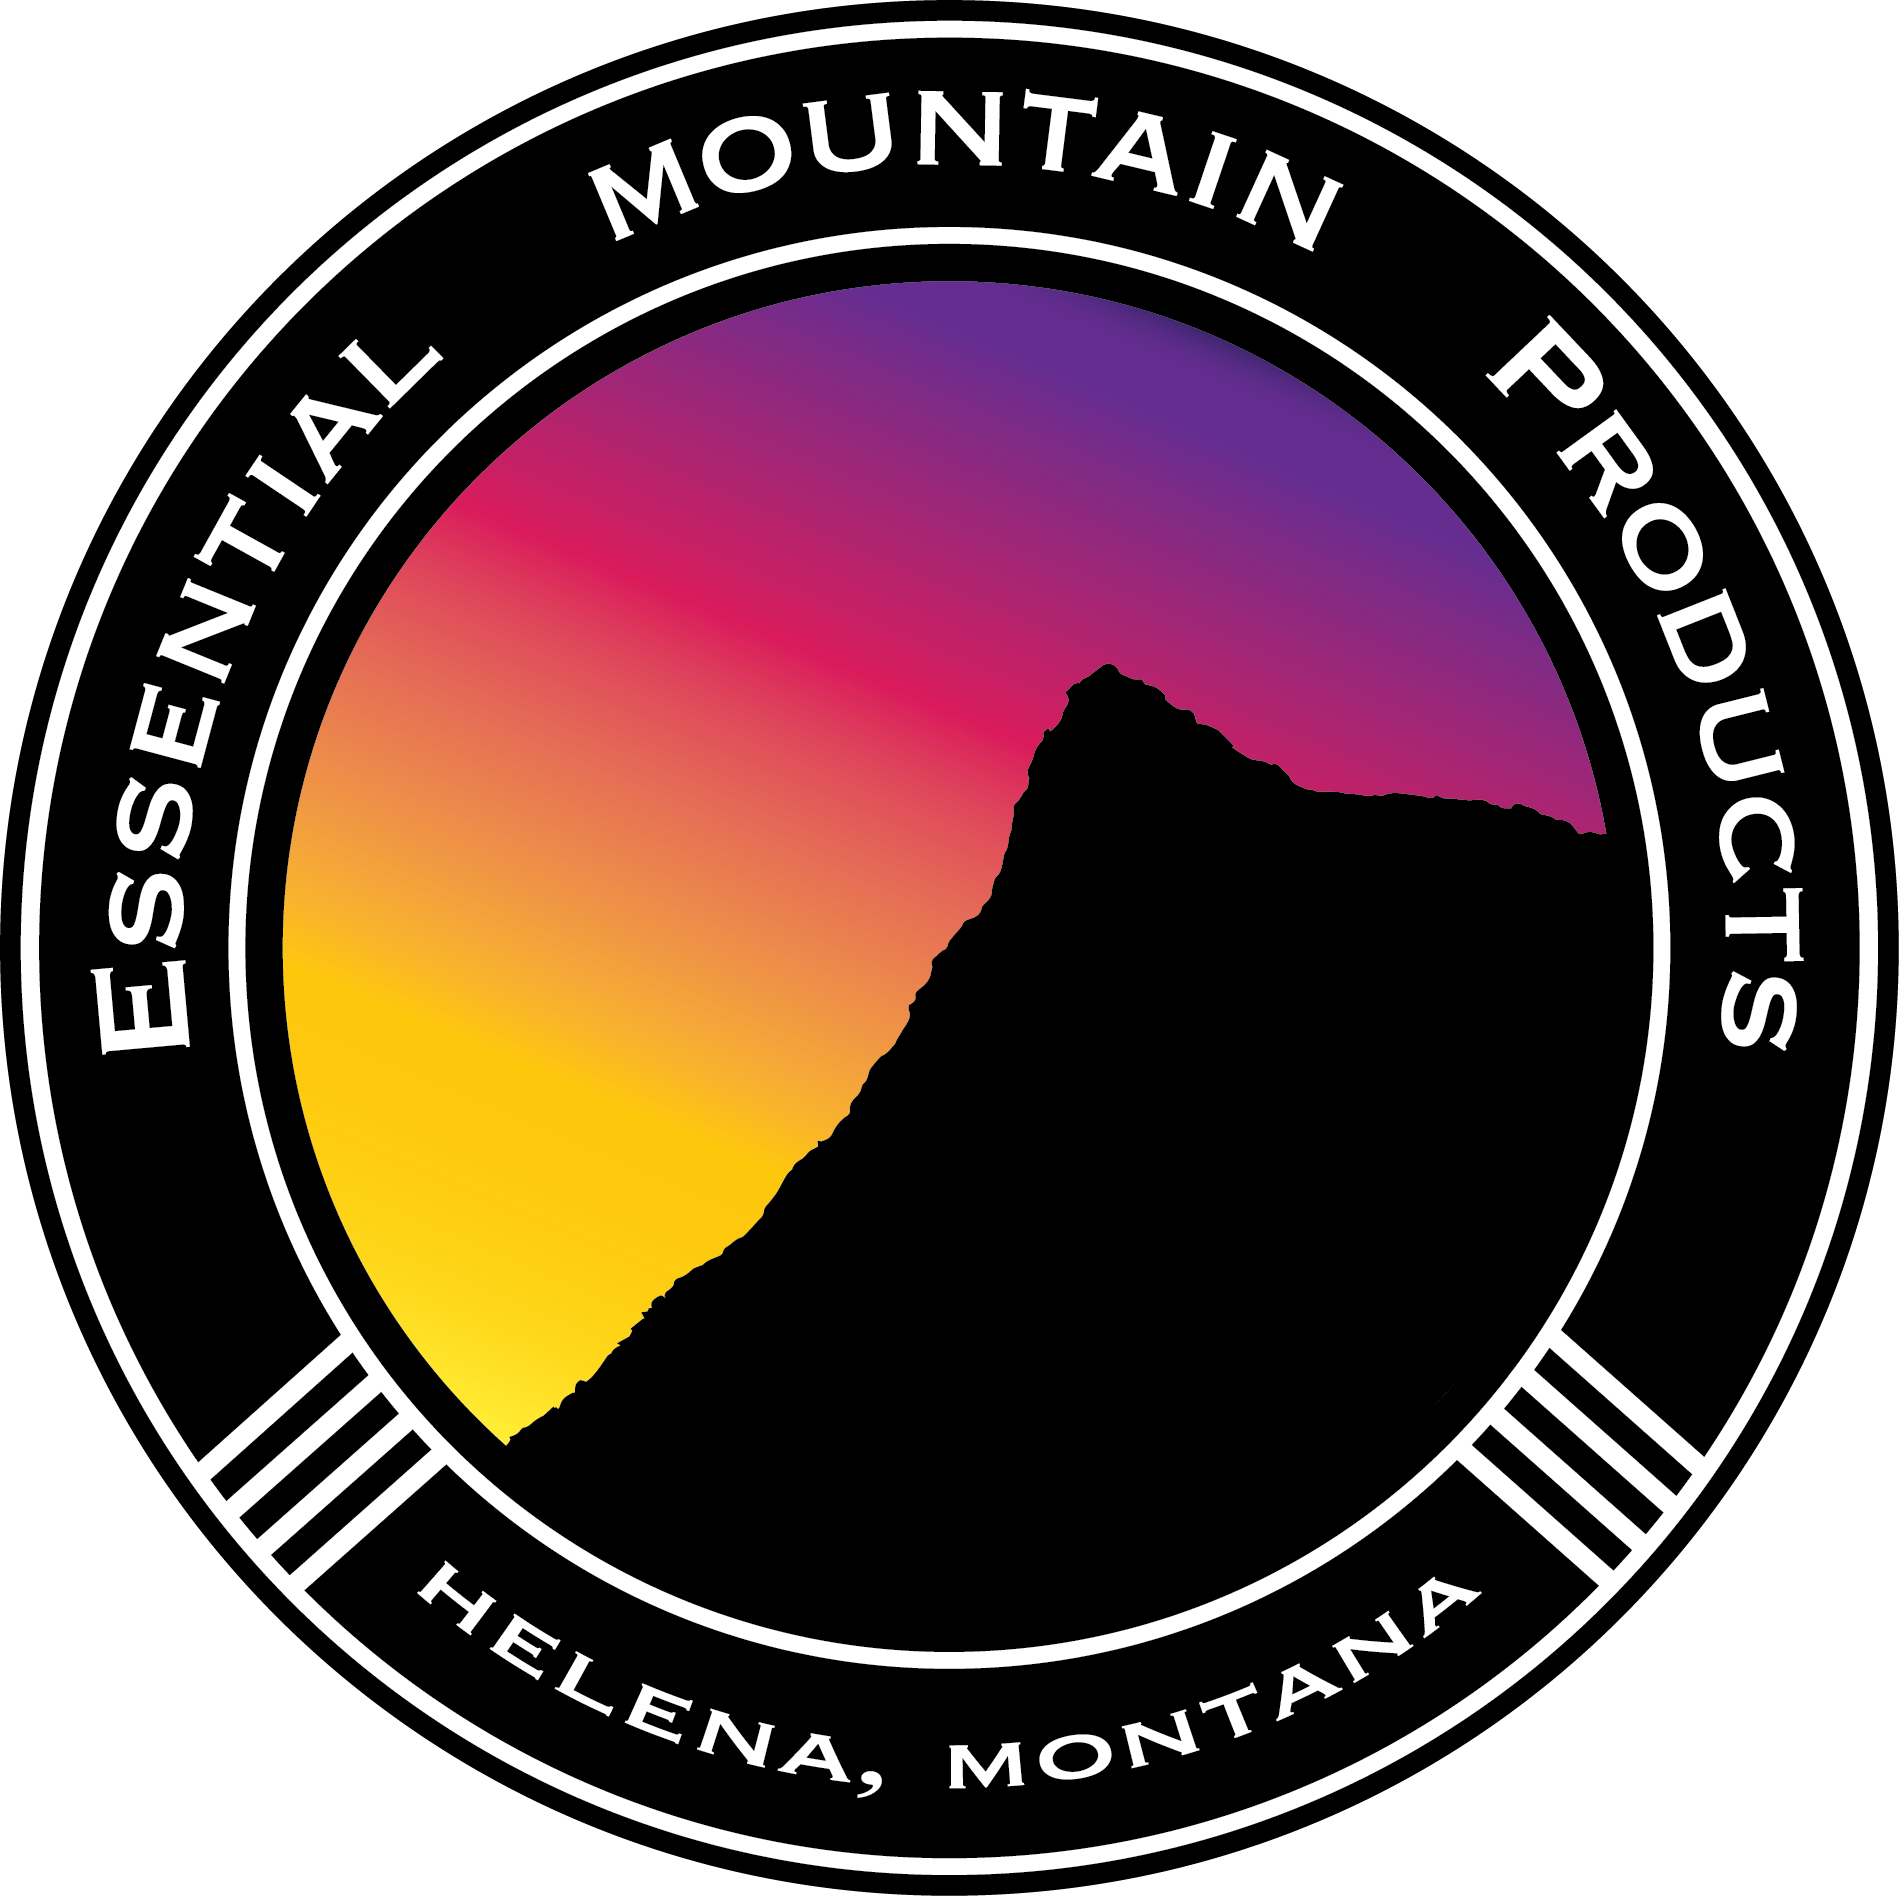 Essential Mountain Products